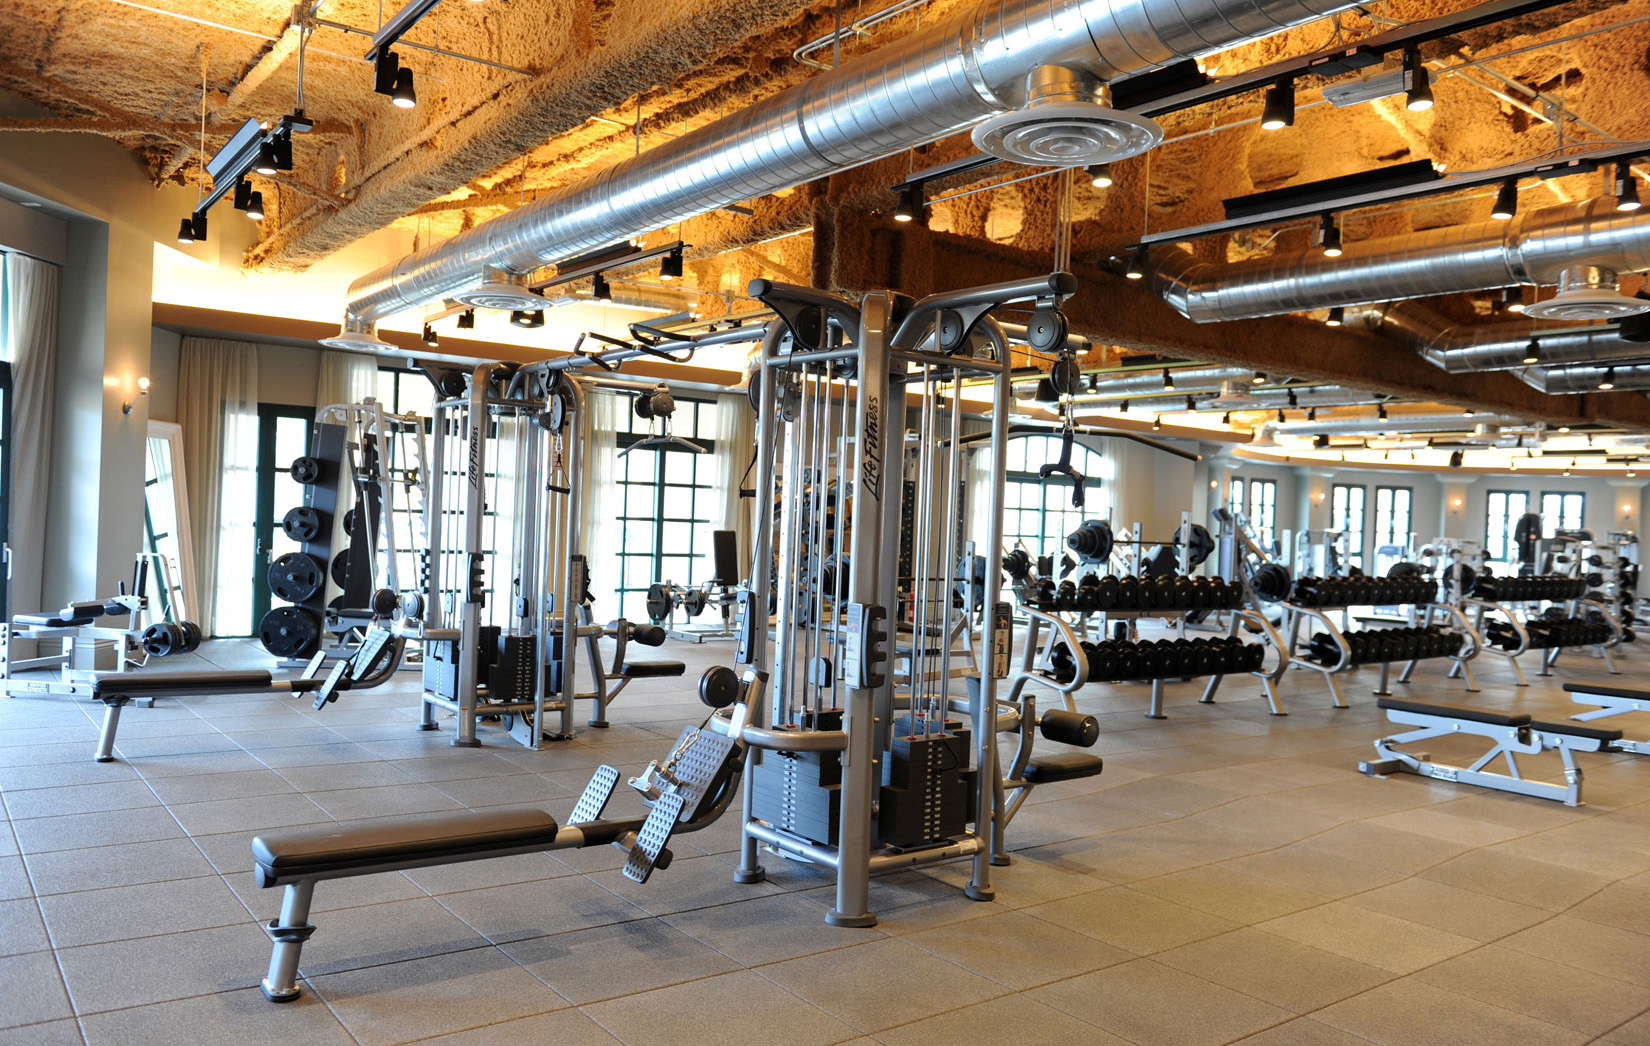 DavidBartonGym Opens Las Vegas Location in Tivoli Village